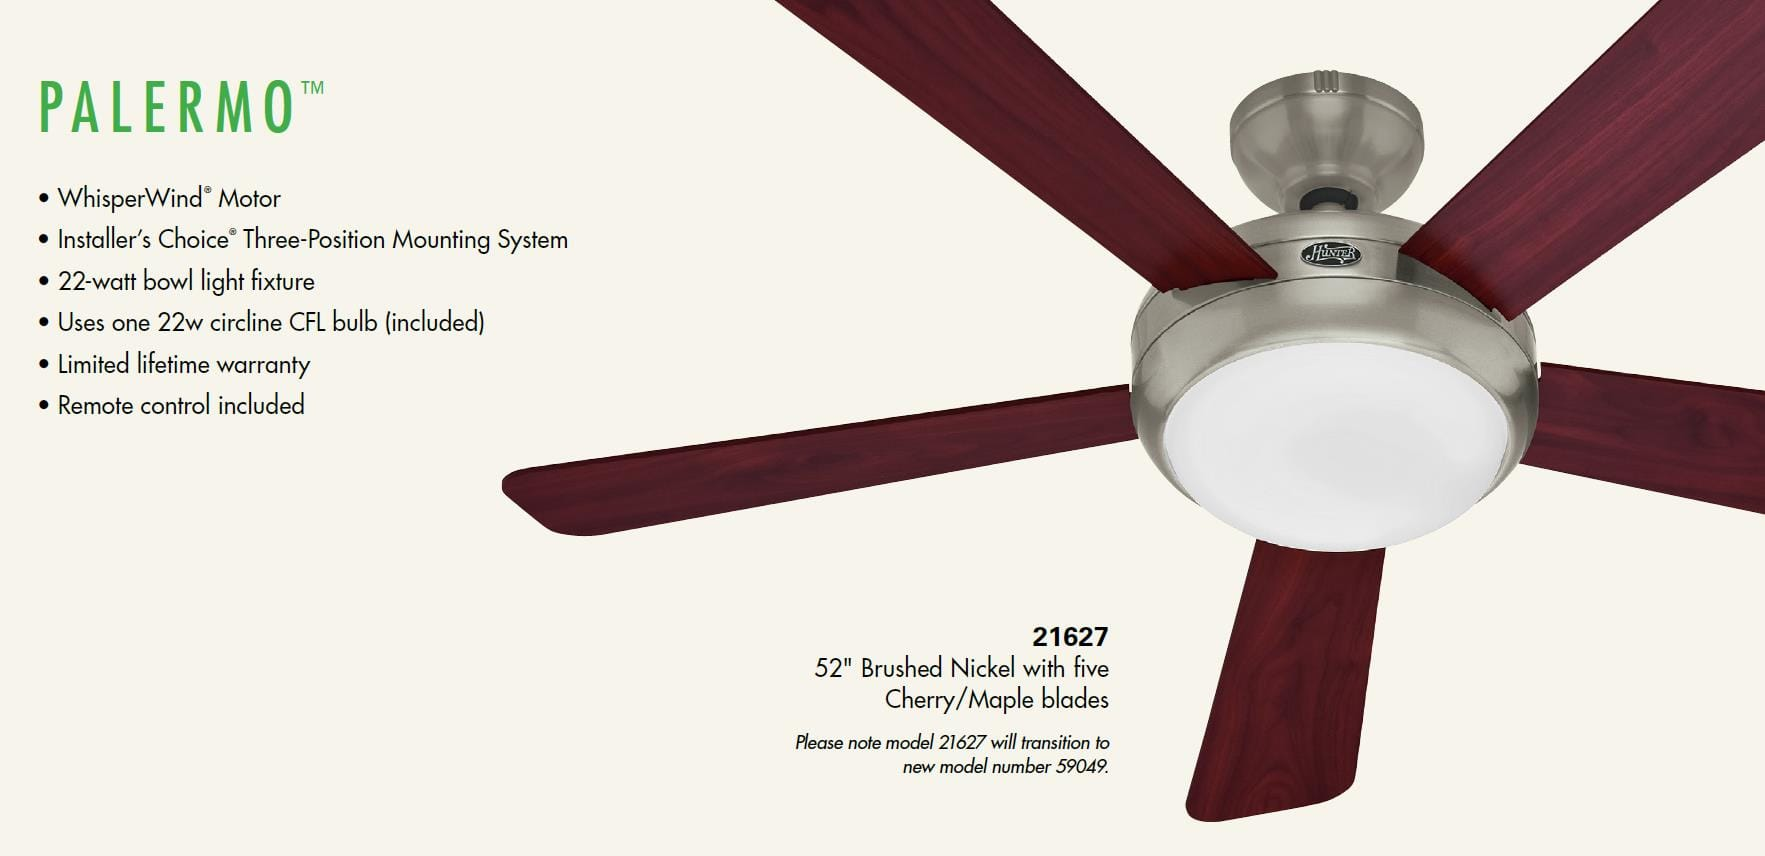 Hunter 59049 brushed nickel palermo 52 5 blade energy star ceiling hunter 59049 brushed nickel palermo 52 5 blade energy star ceiling fan blades light kit and remote included lightingdirect aloadofball Gallery